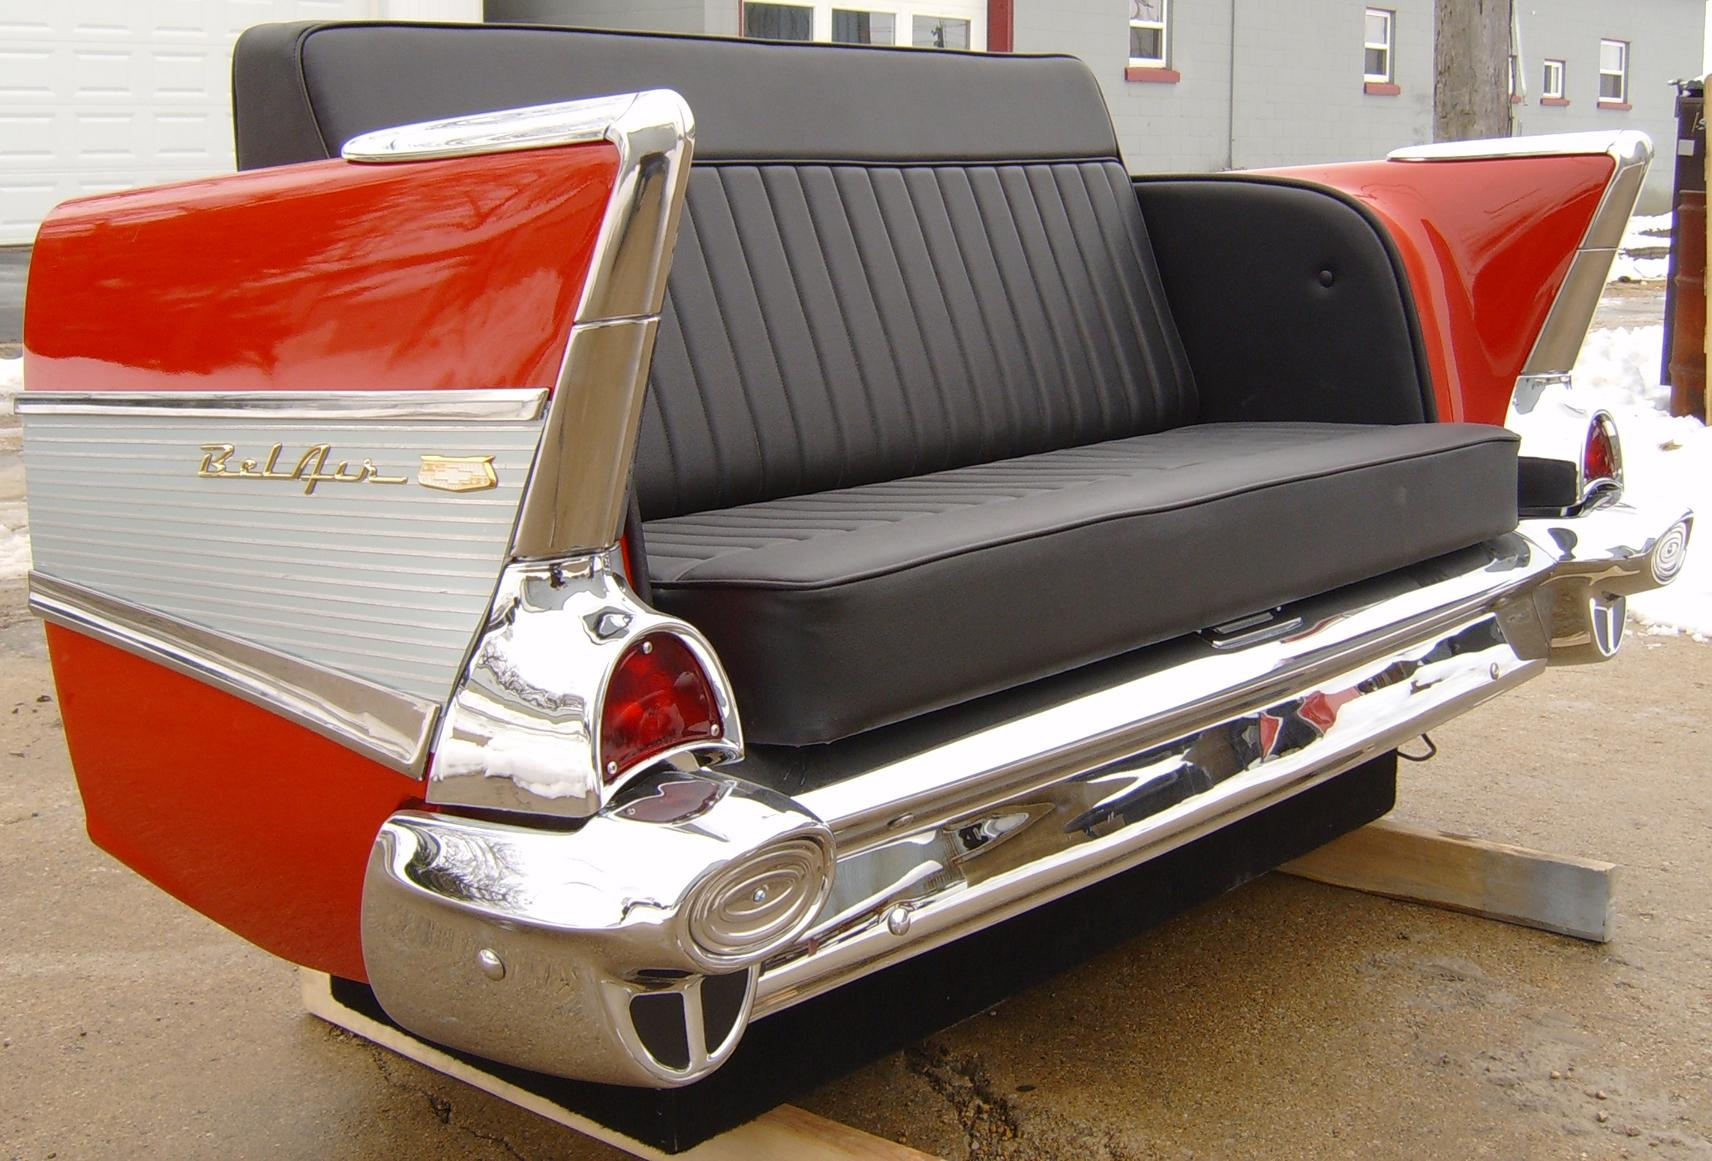 New Retro Cars : Restored Classic Car Furniture And Decor within Classic Sofas for Sale